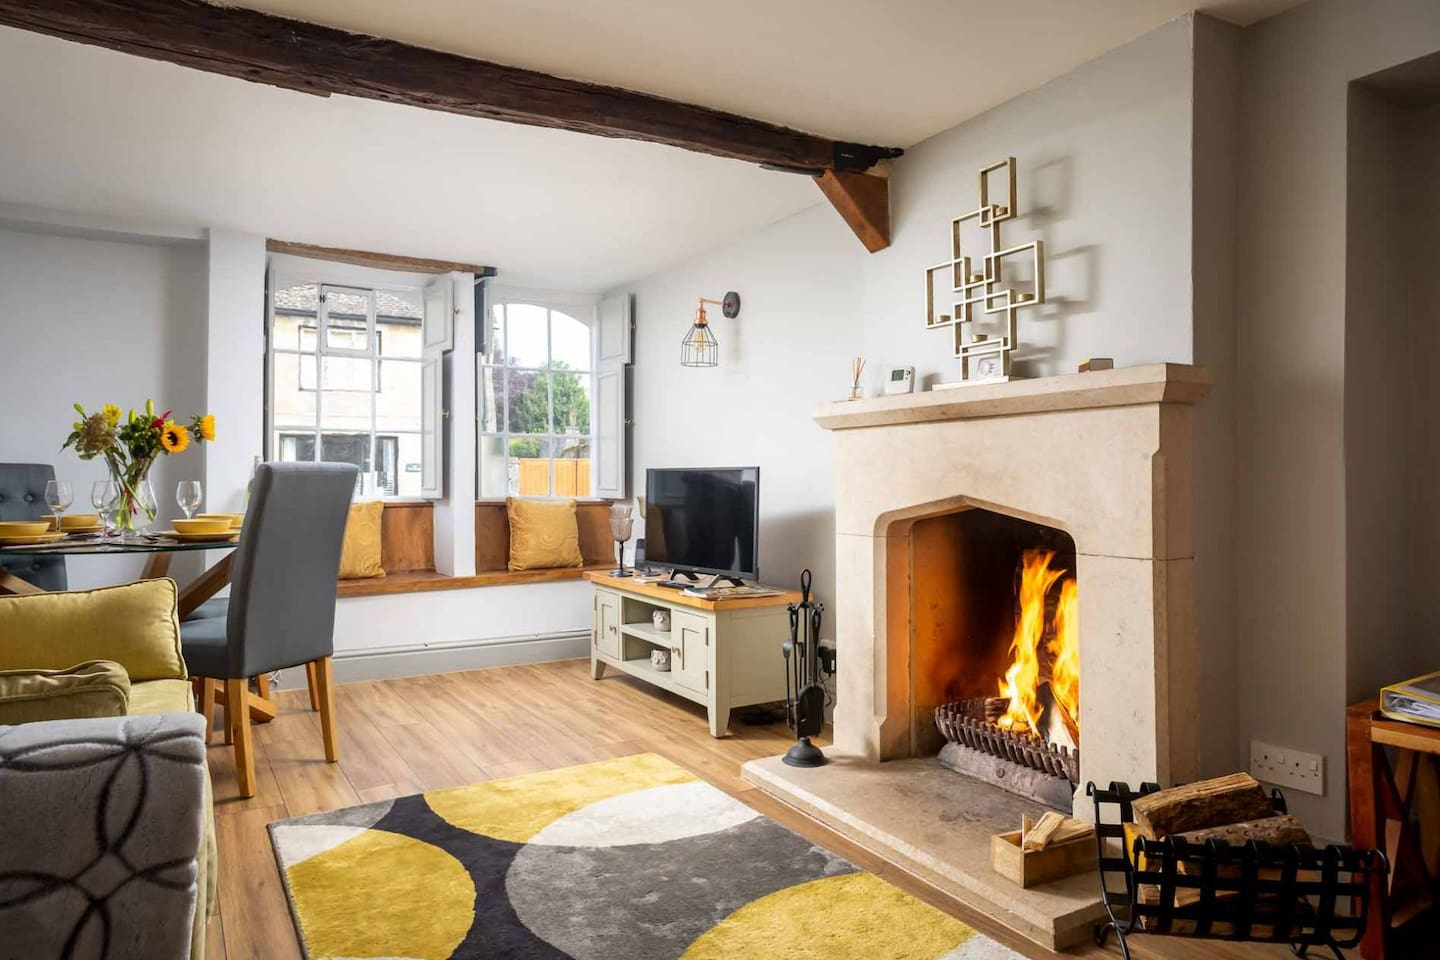 The beautifully presented living room, with a cosy real fire